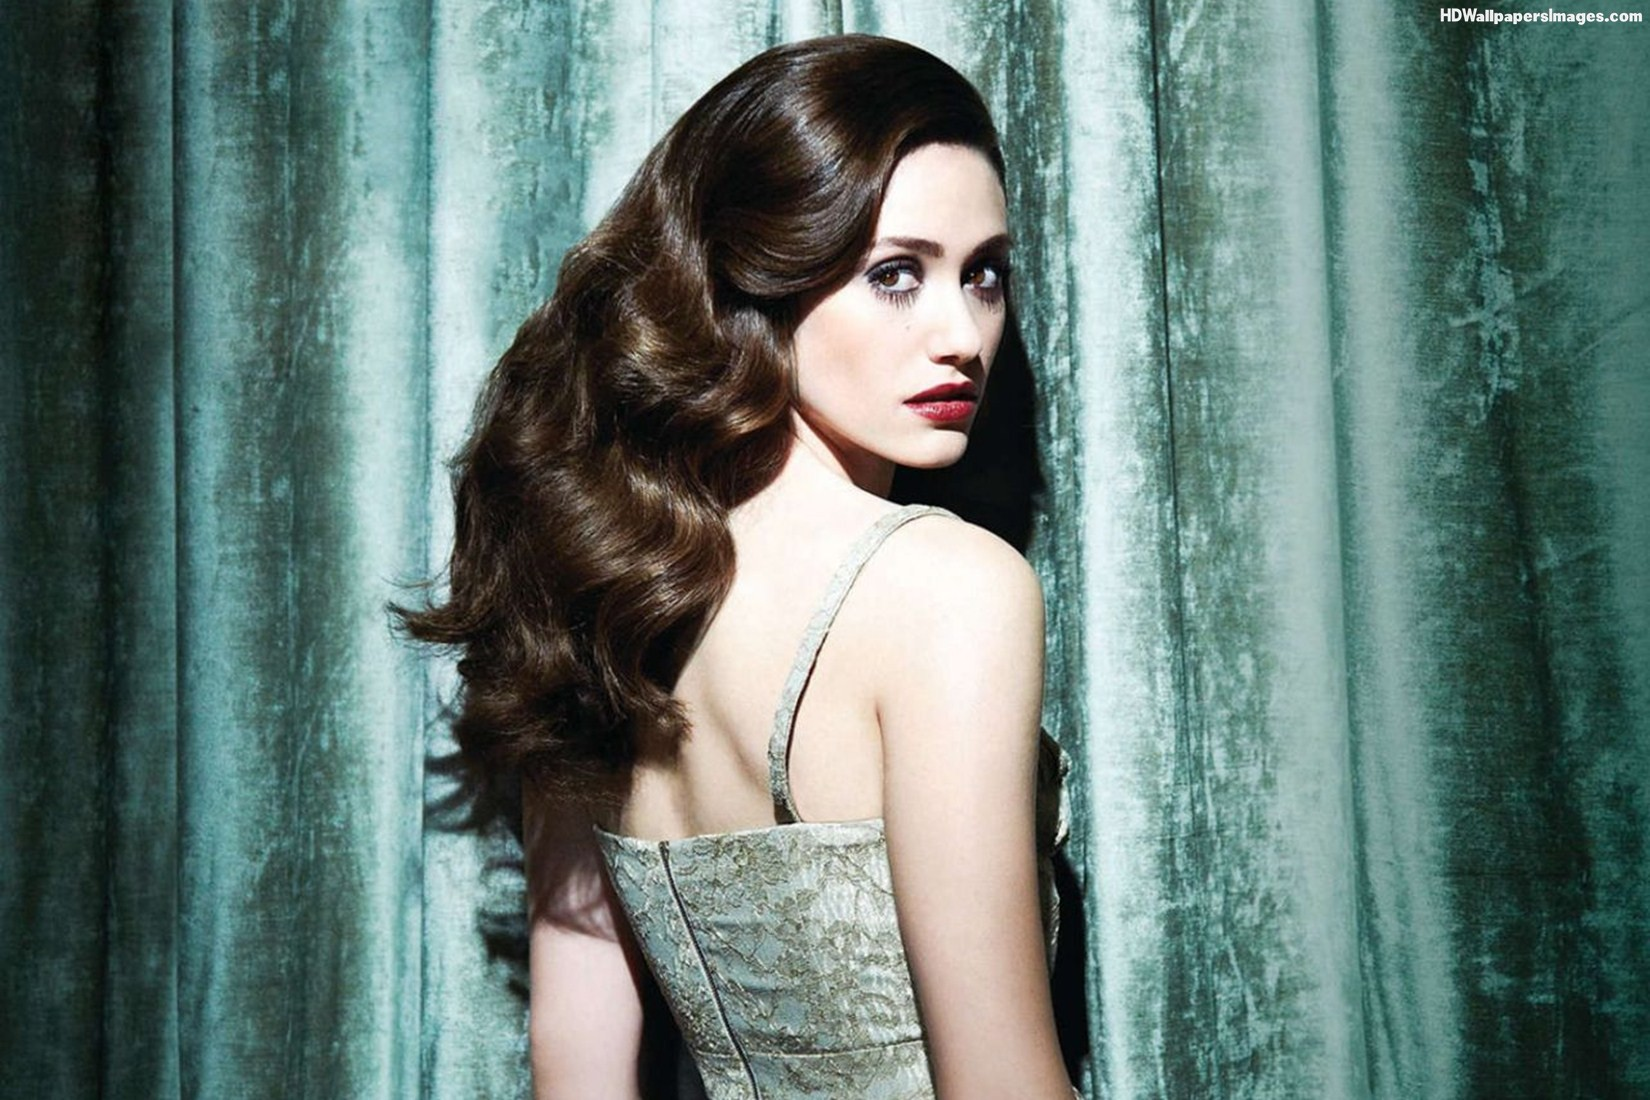 Emmy Rossum Images, Pictures, Photos, HD Wallpapers 1421